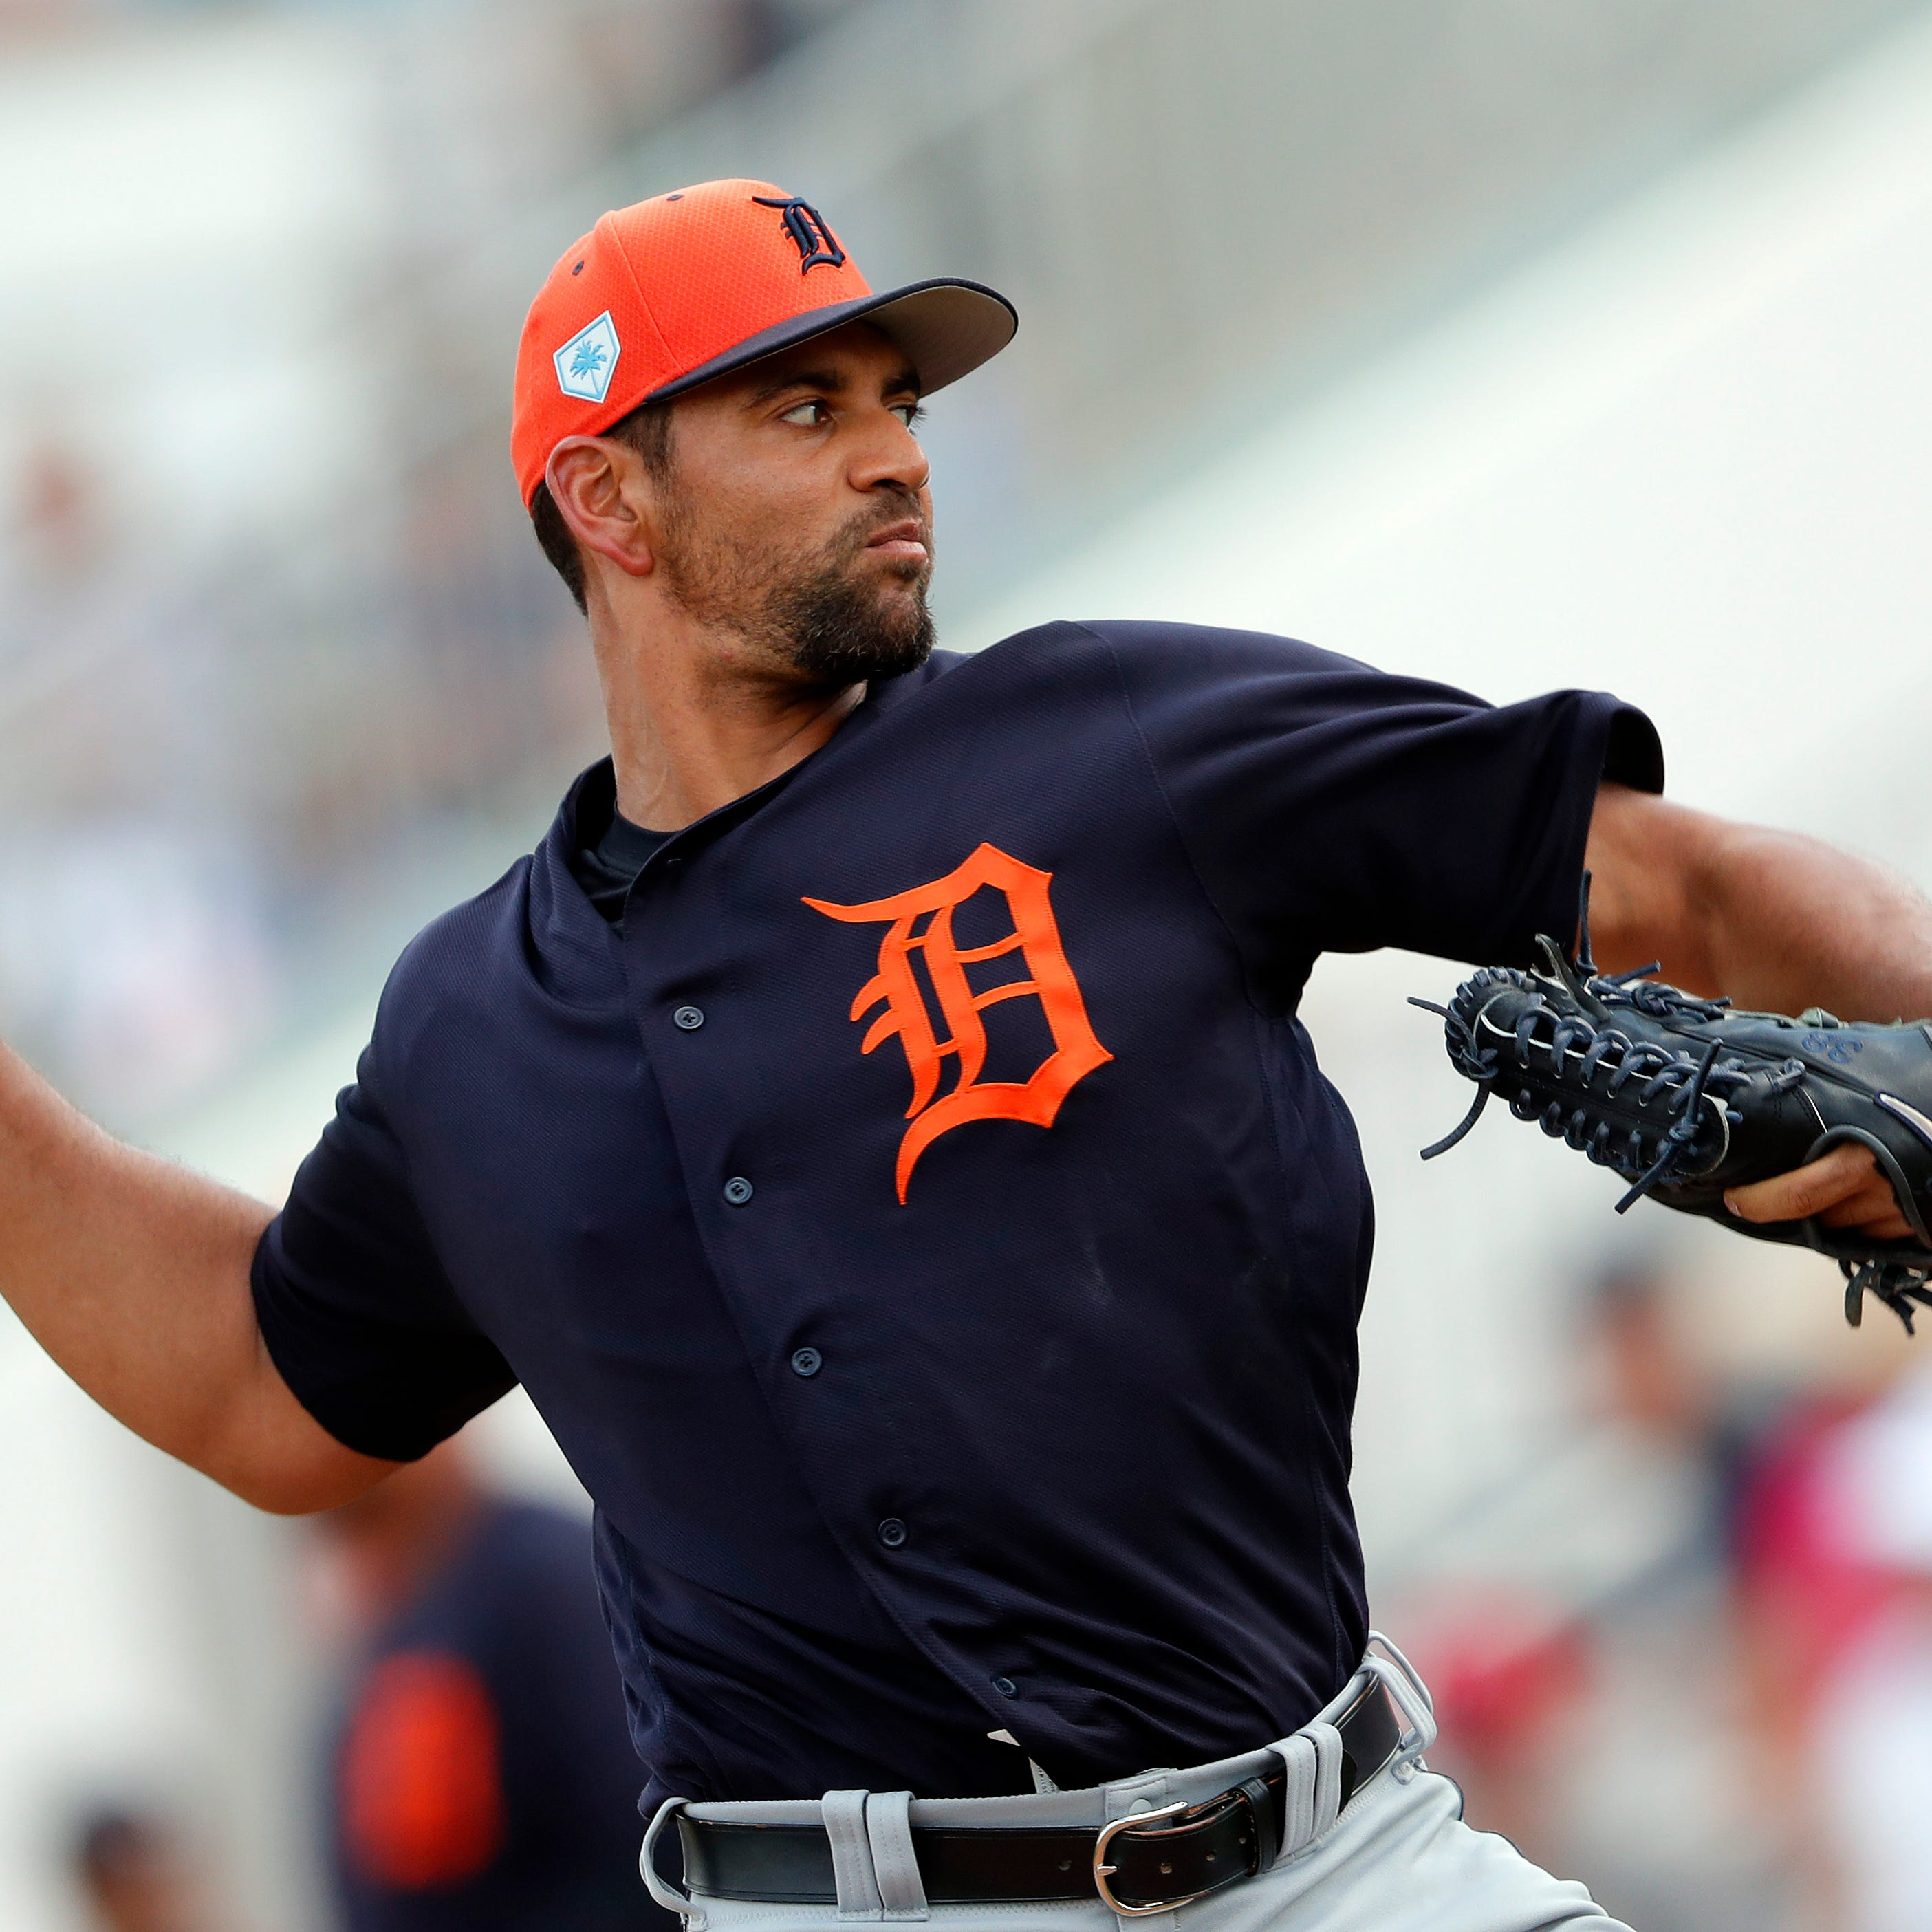 Detroit Tigers lineup vs. Atlanta Braves in spring: RF Castellanos hits 2nd